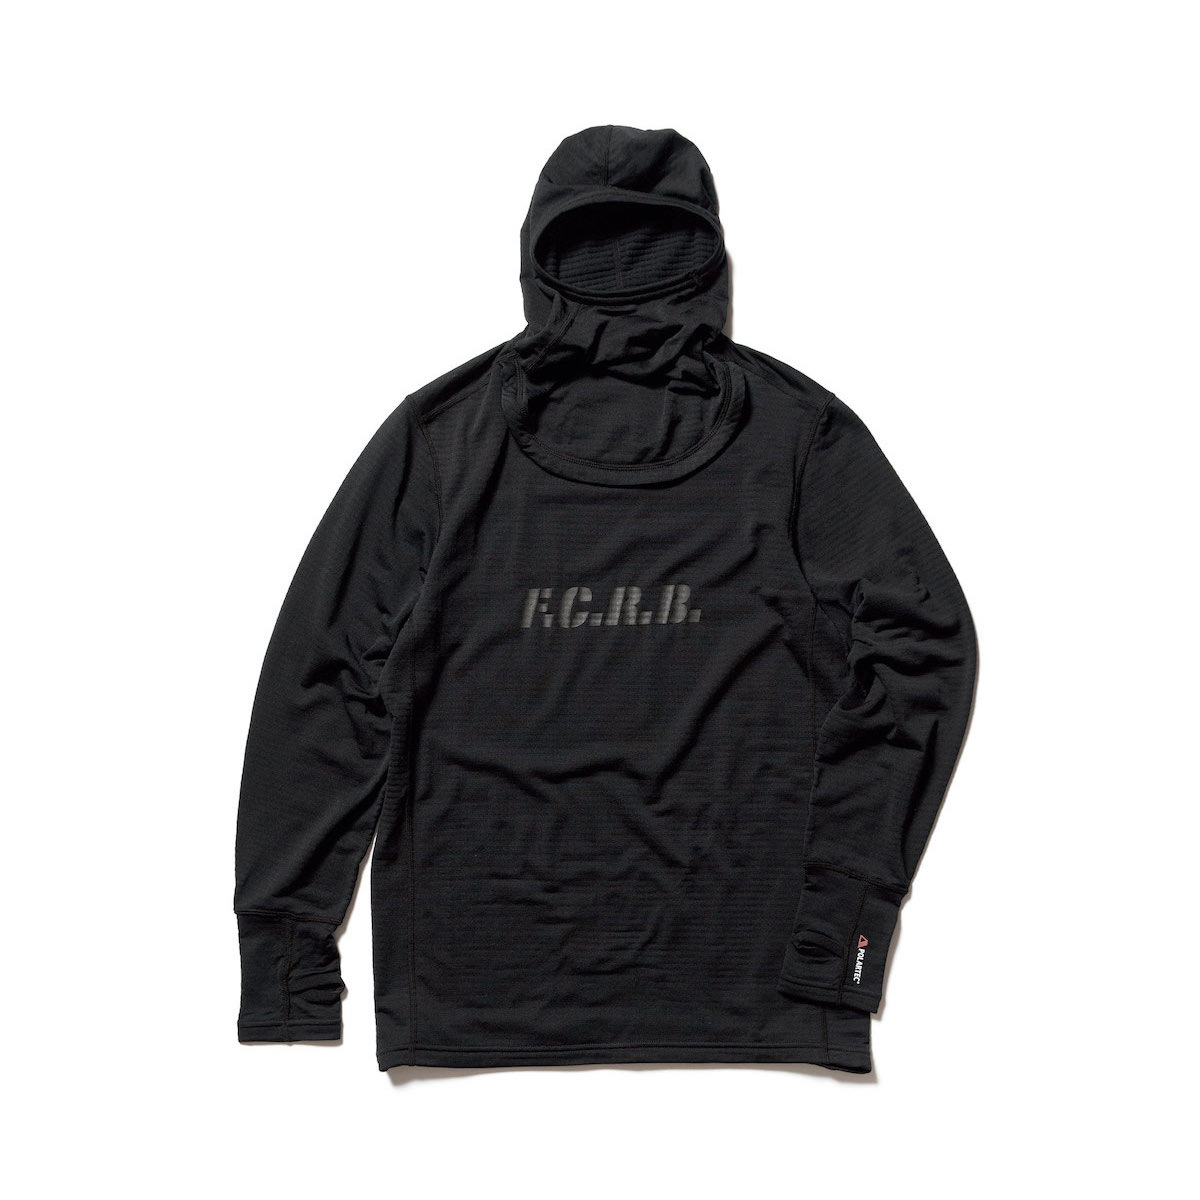 F.C.Real Bristol / POLARTEC BASE LAYER HOODIE (Black)